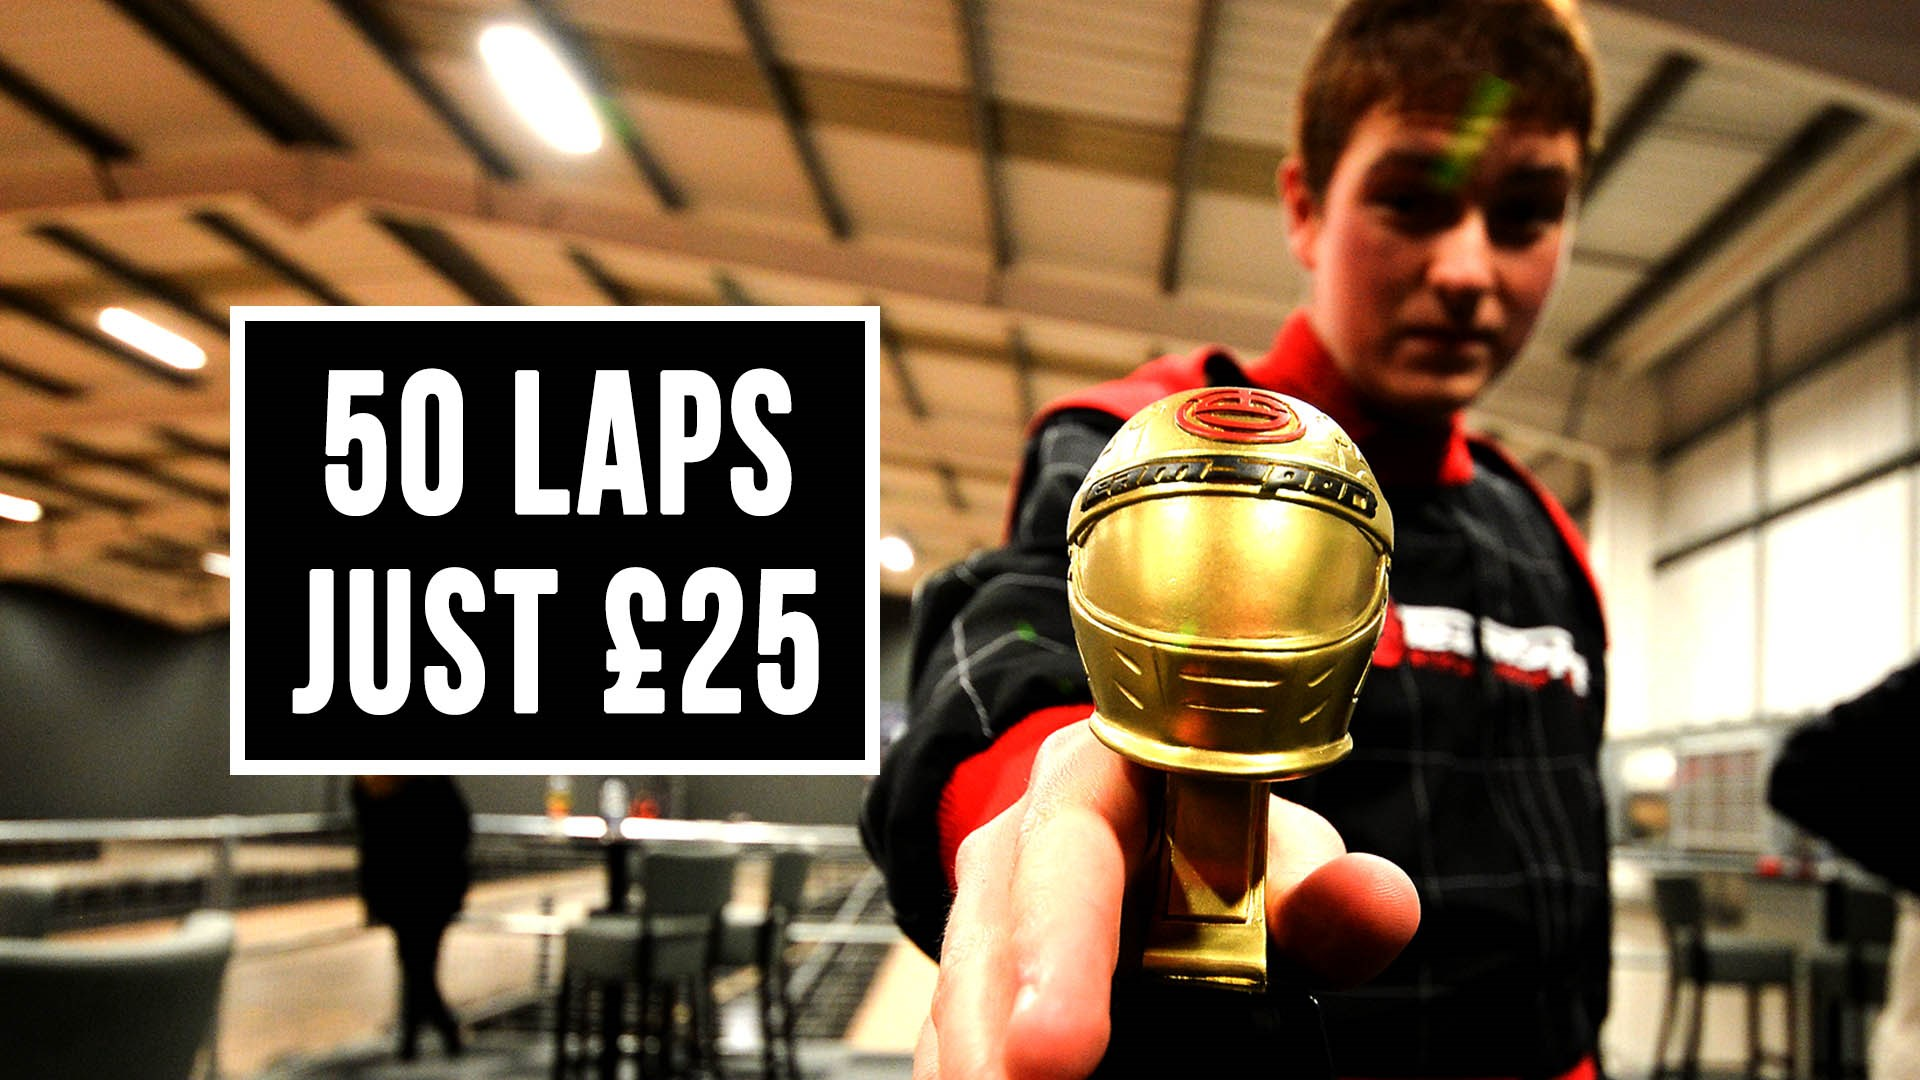 UNBELIEVABLE GO KARTING OFFERS - March's Special Offer